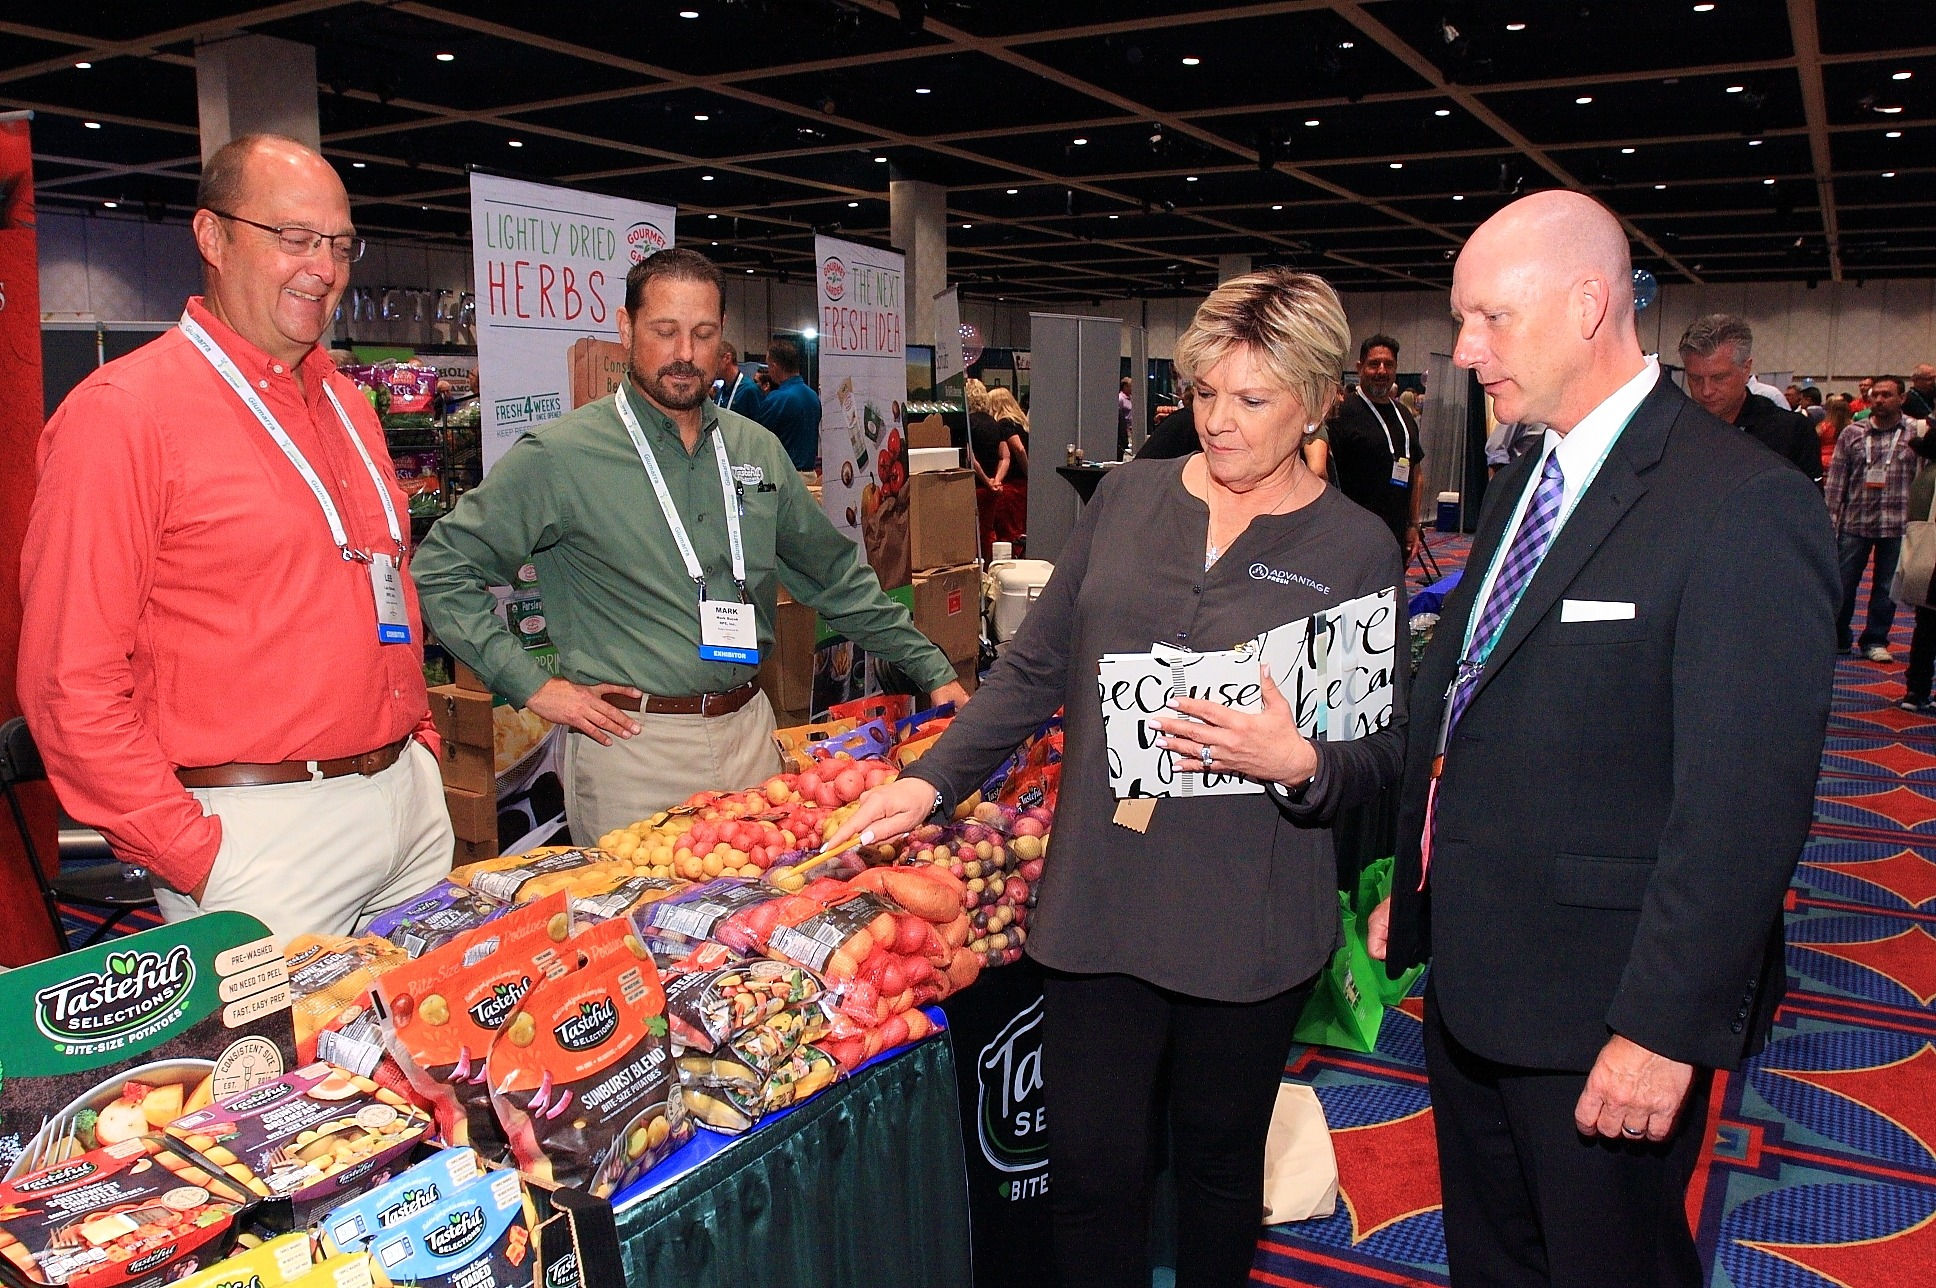 Lee Brown and Mark Bucek from RPE, Inc., and Nancy Hamilton from Advantage Fresh discuss new products with Don Gann from Stater Bros. Markets